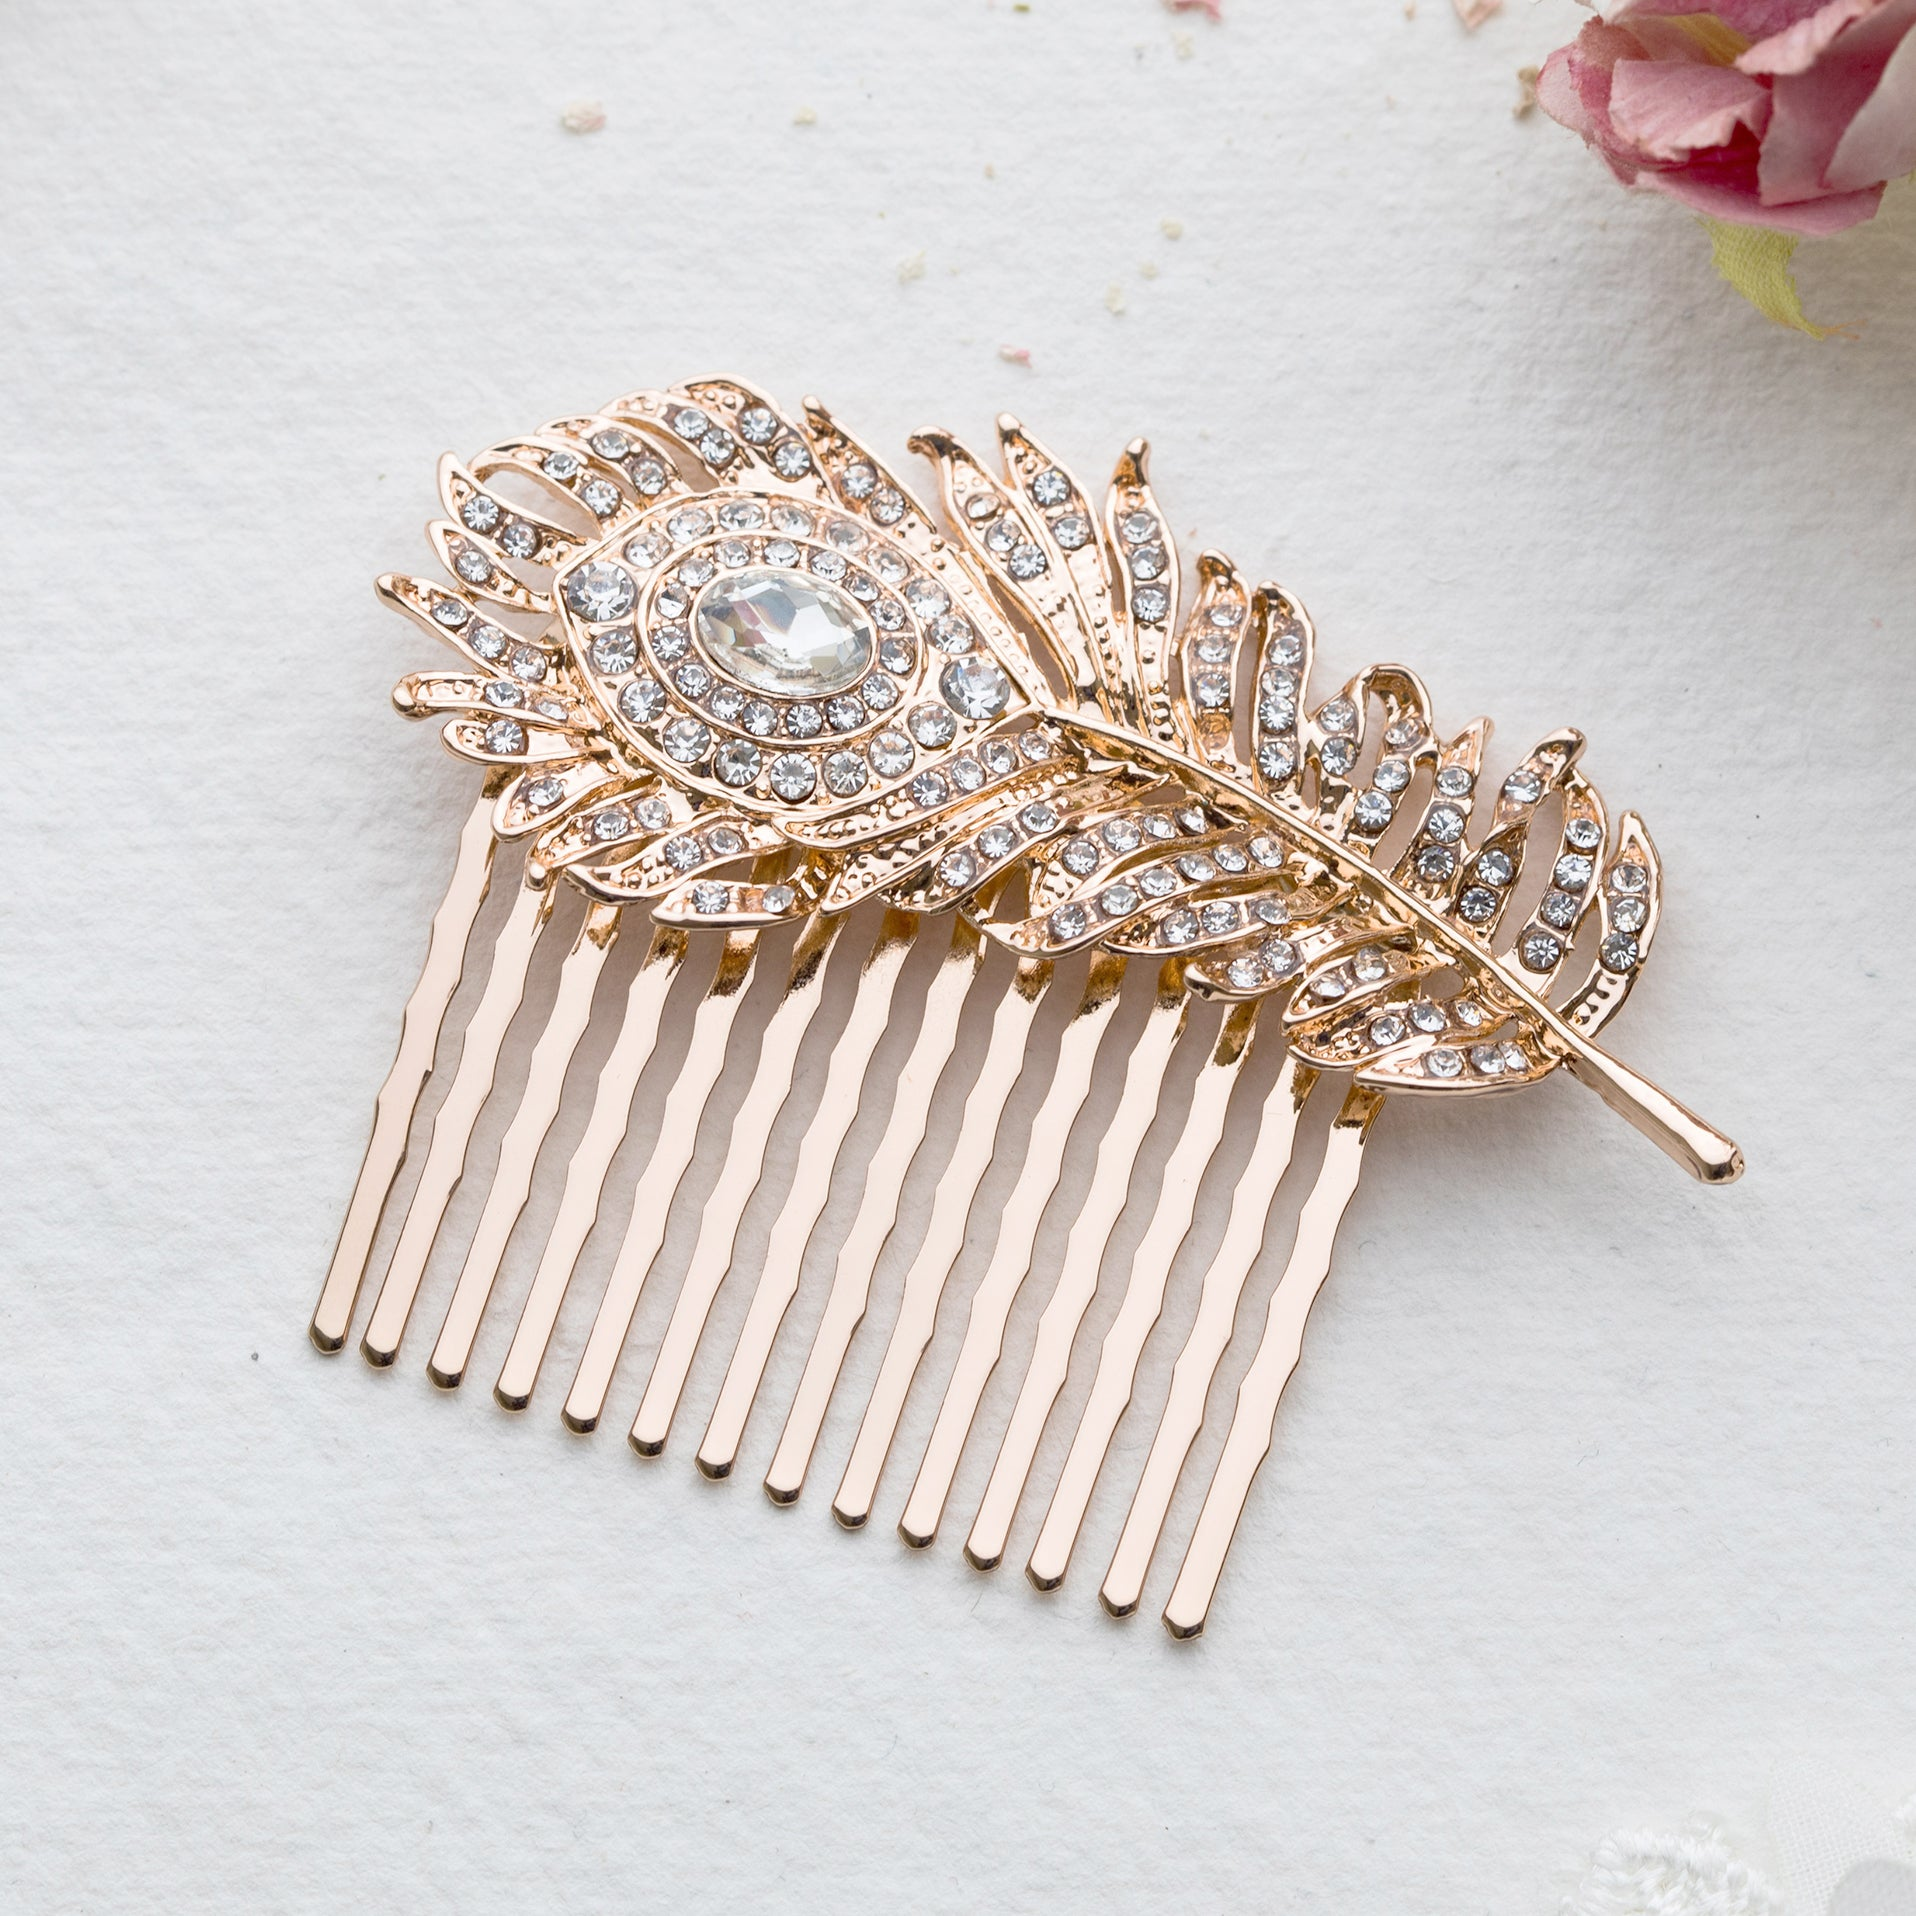 Carla crystal silver feather hair comb